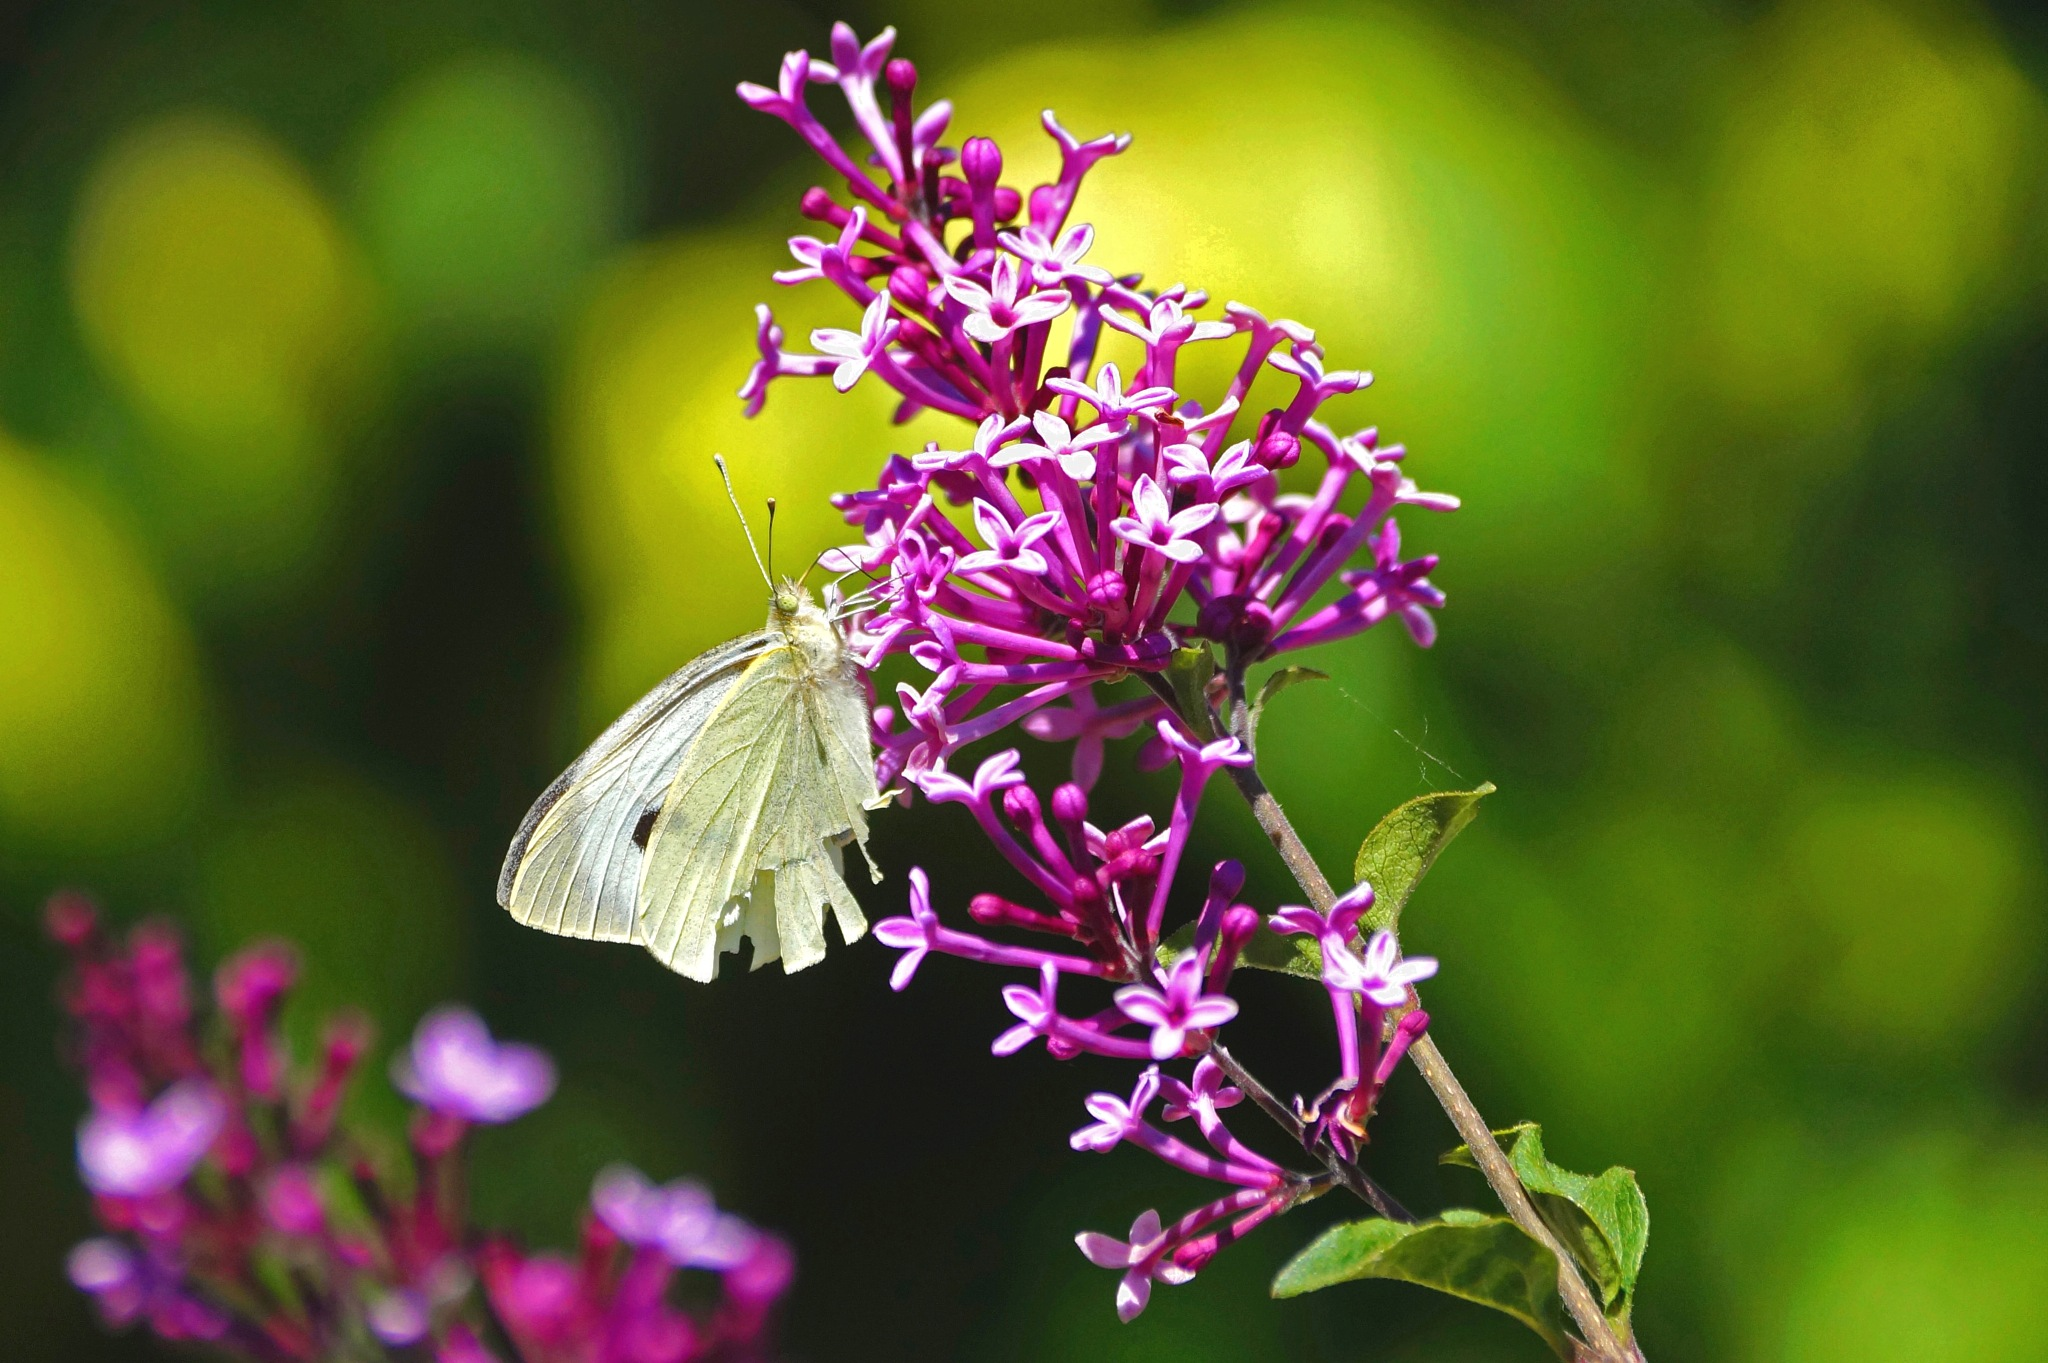 Butterfly on Lilac by Marian Baay